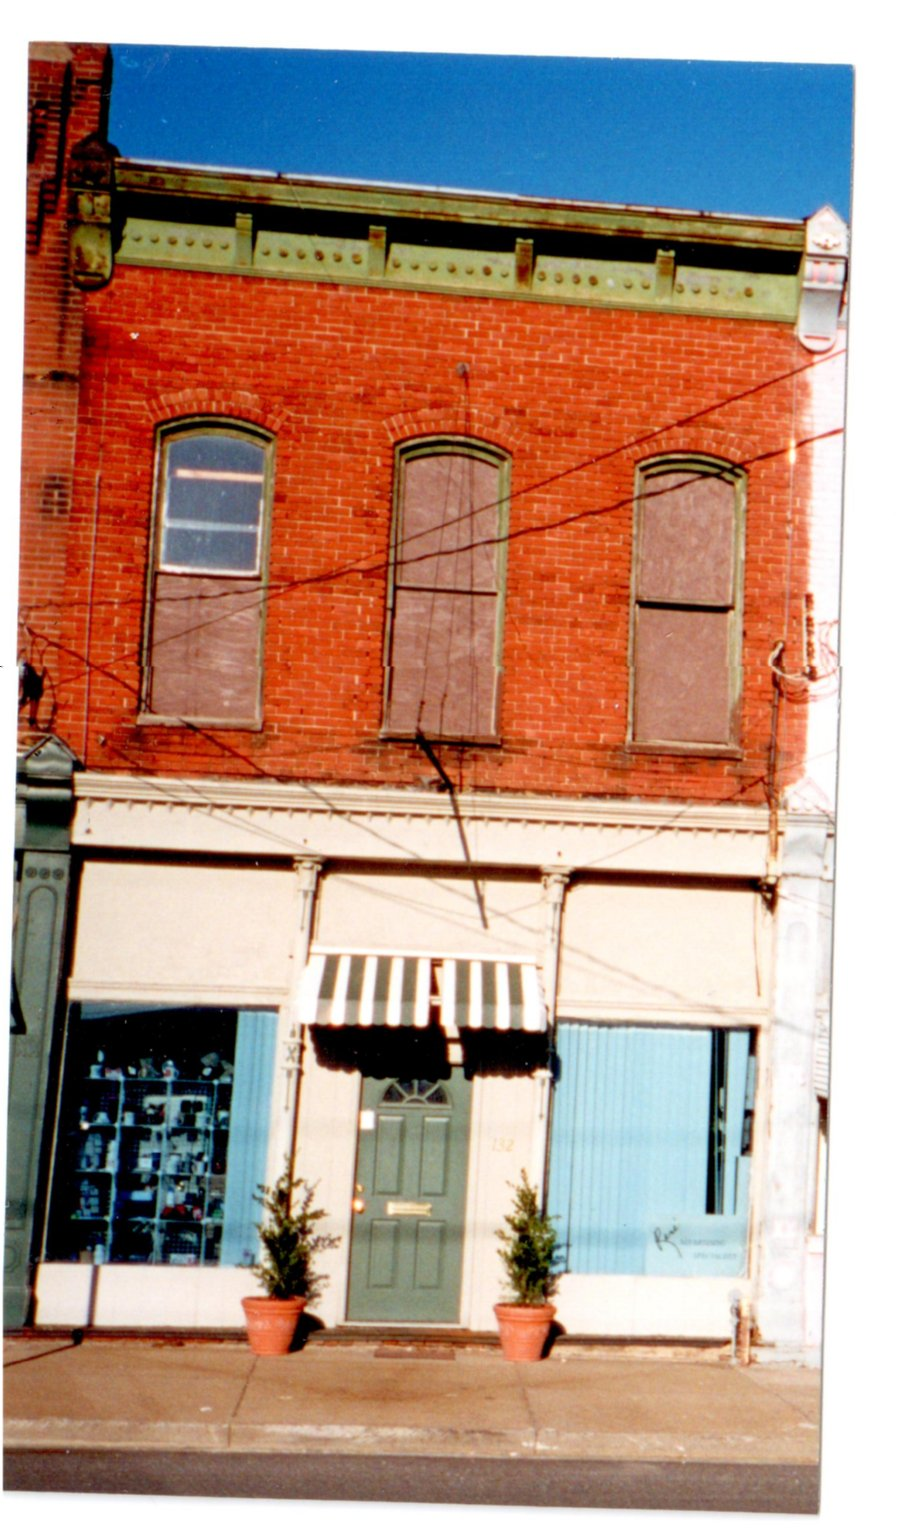 Building at 132 South 3rd Street